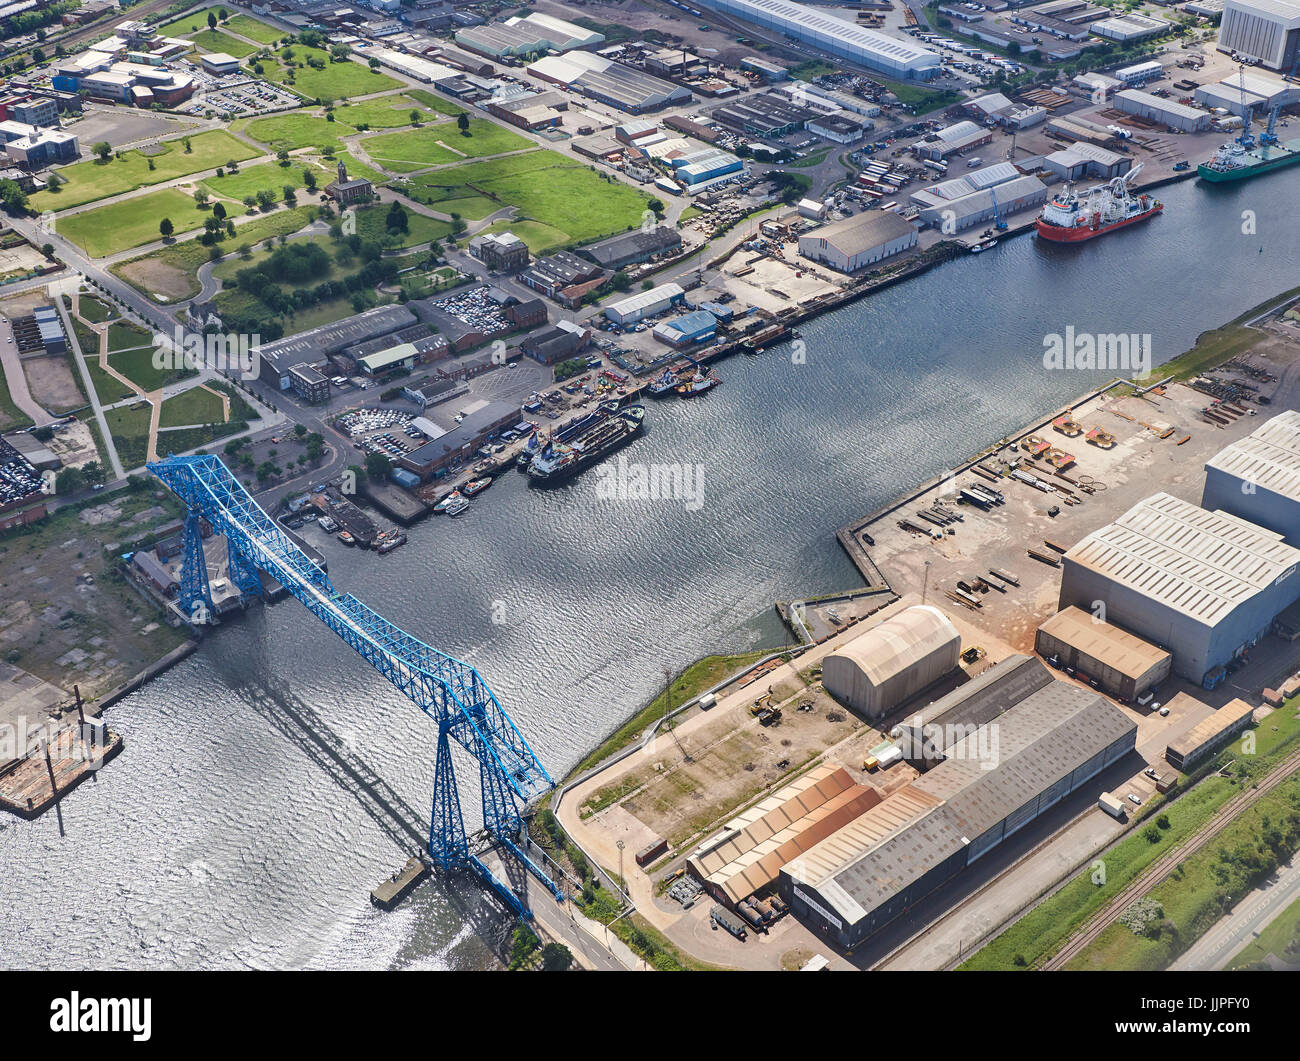 River Tees from the air, Middlesborough, North East England, UK - Stock Image